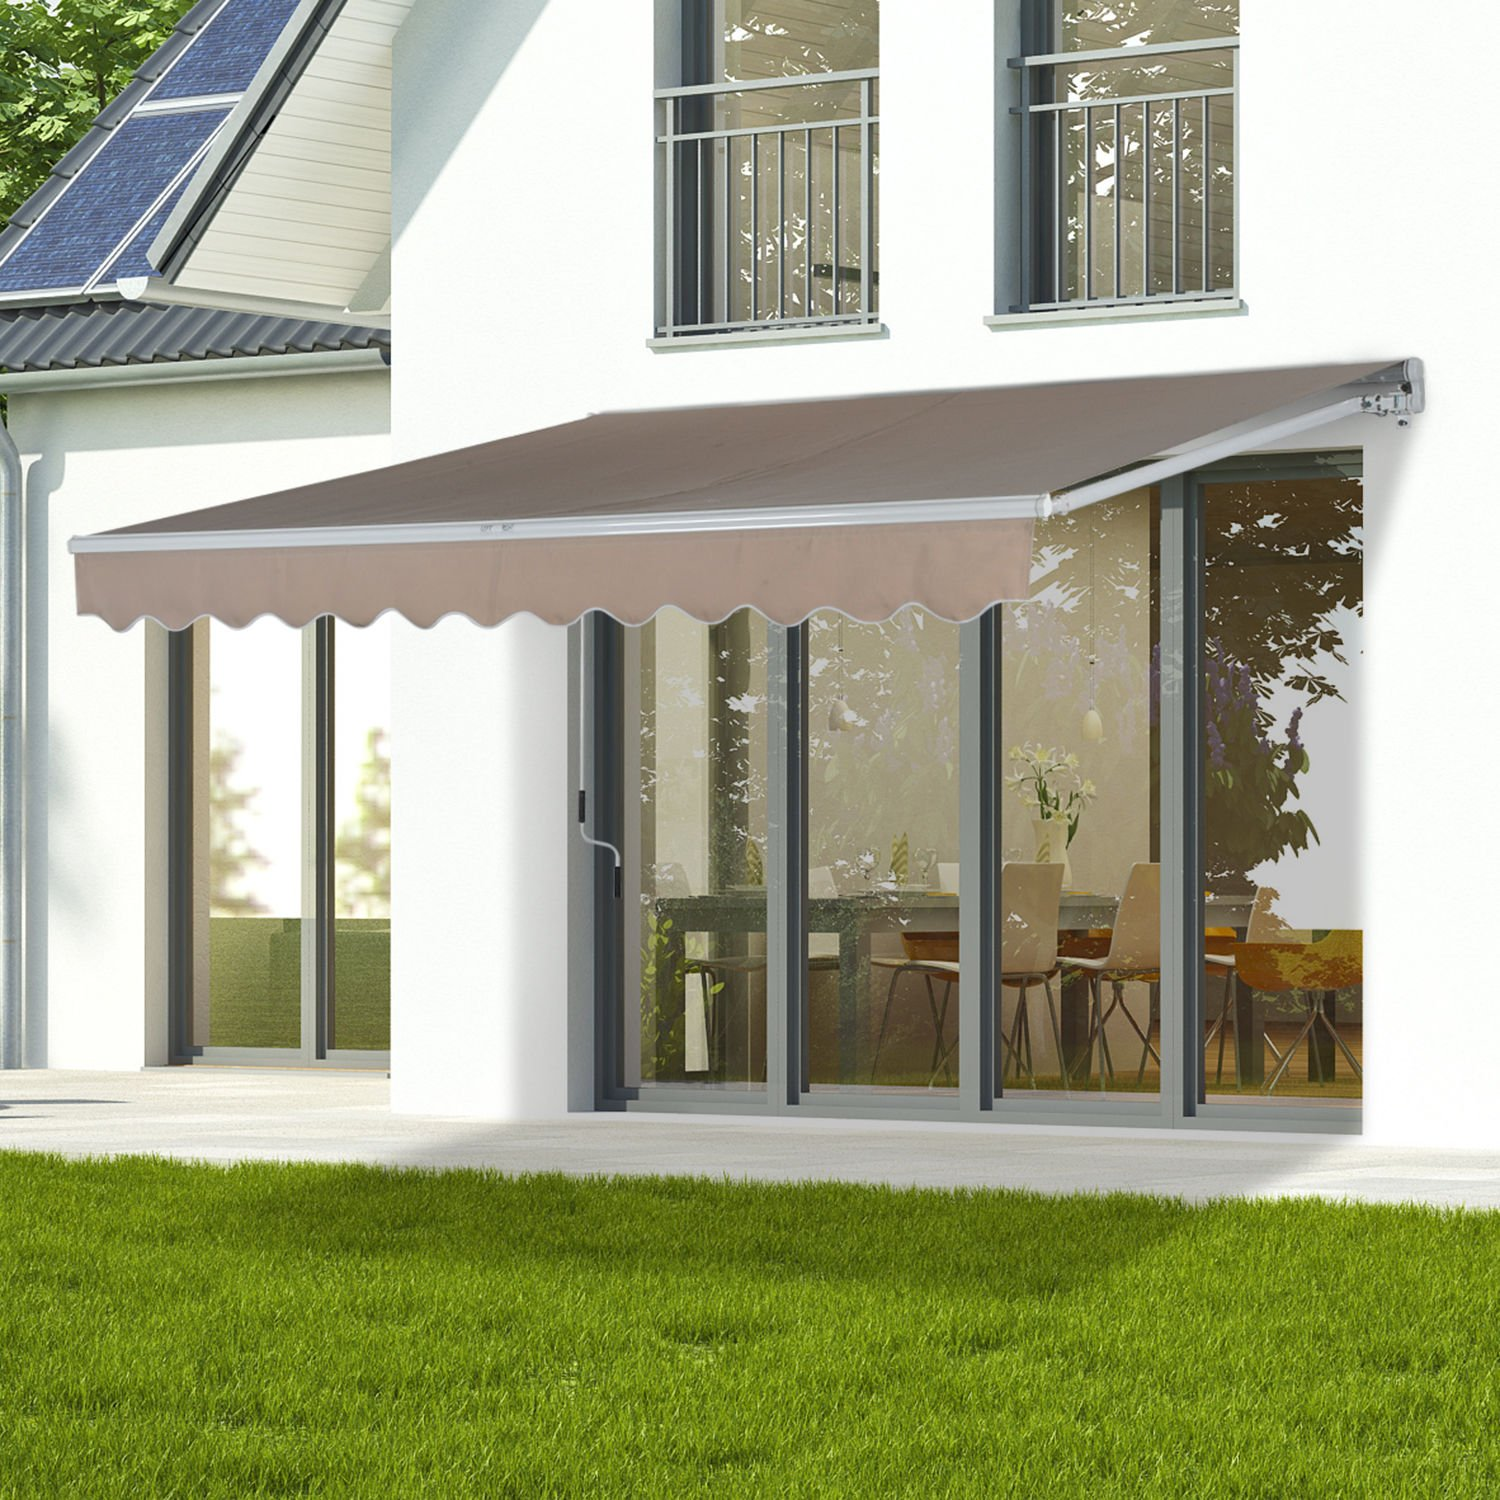 Creamy 13 x8 Manual Awning Canopy Patio Deck Retractable Sun Shade Shelter